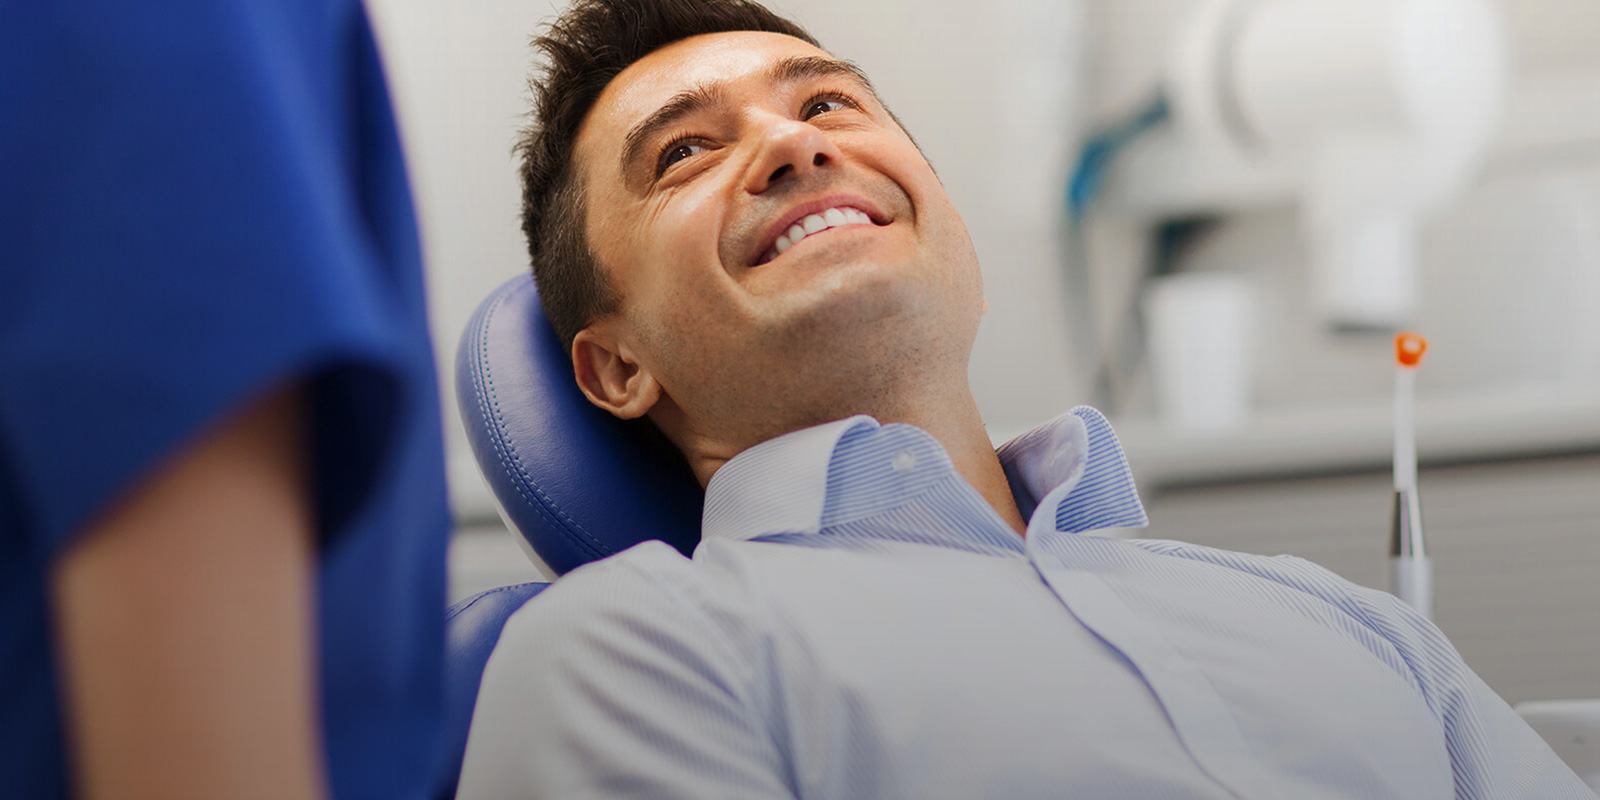 Biomimetic Dentistry: The Newest Technology Added to Our Practice